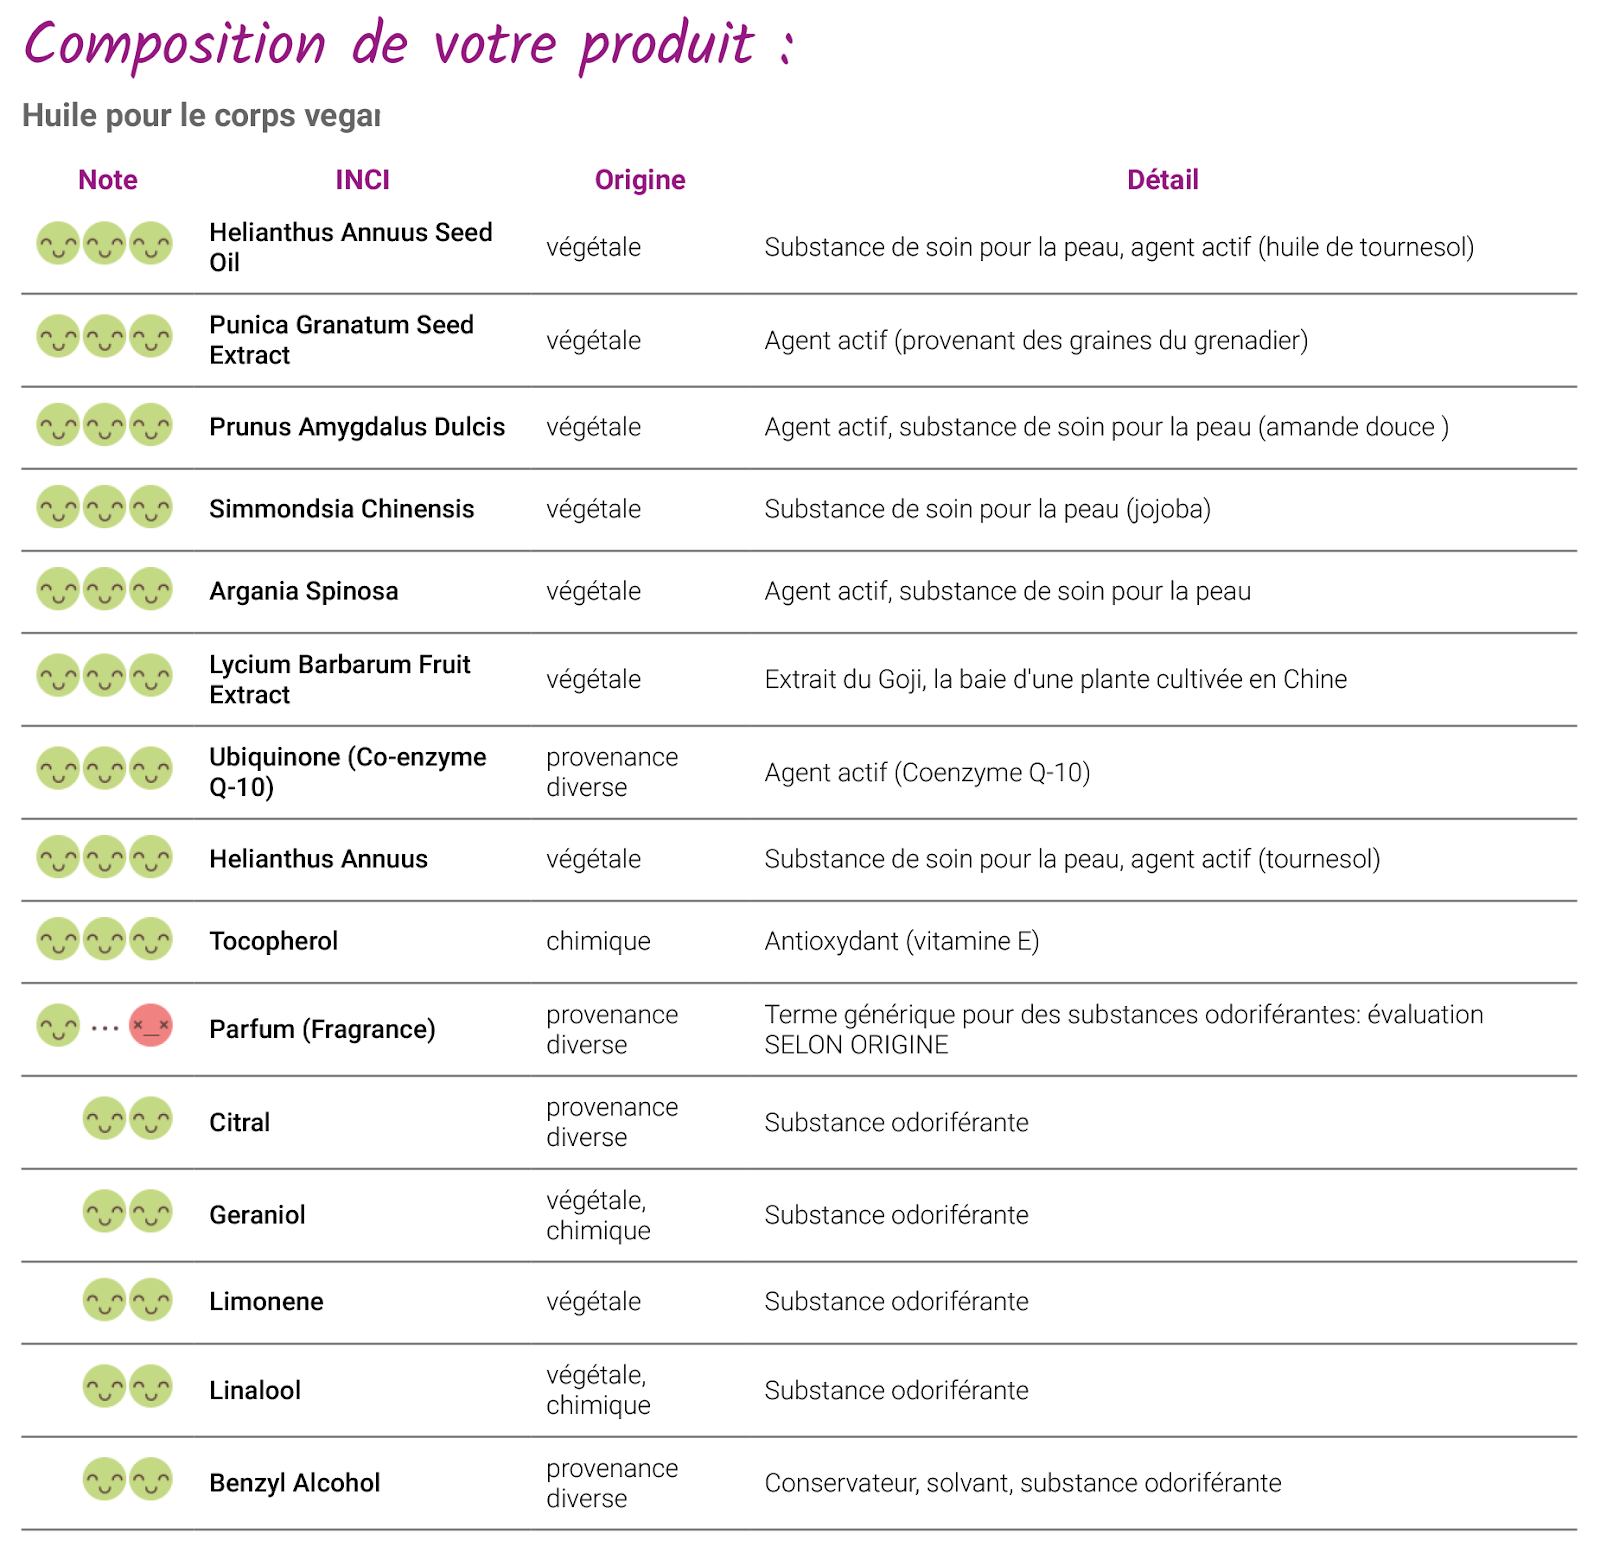 analyse-composition-cien-nature-huile-corps-vegan